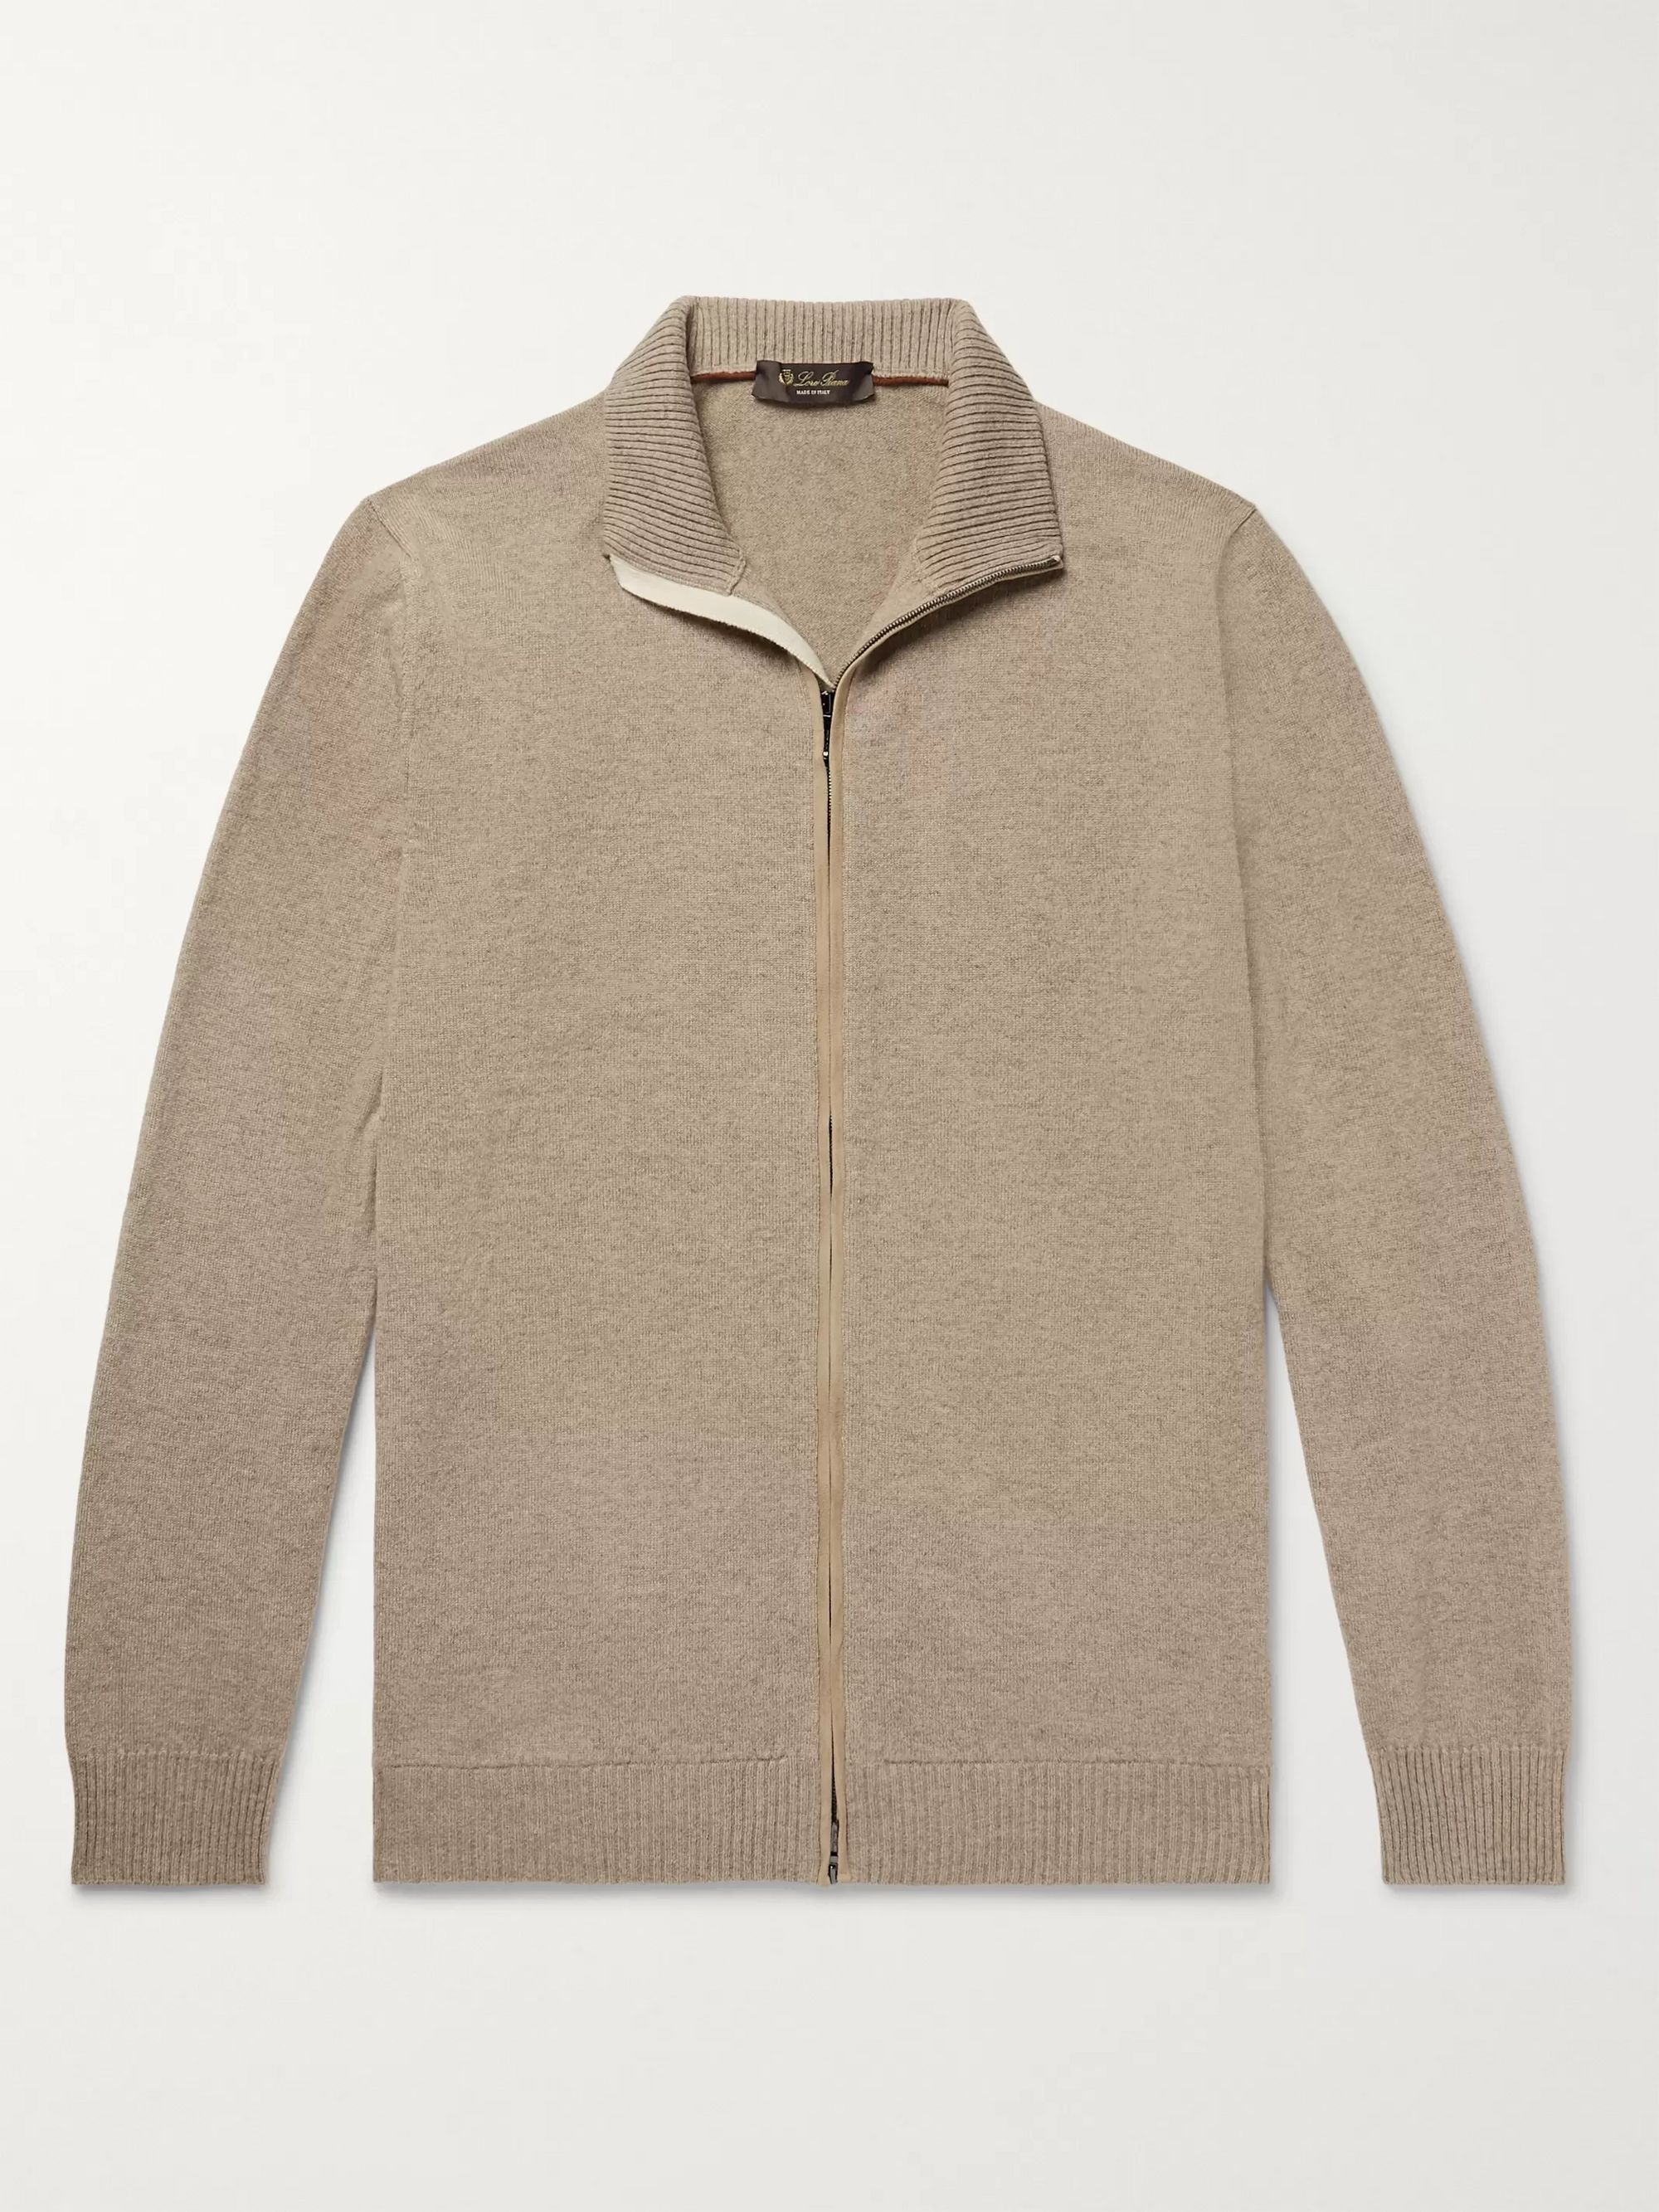 Loro Piana Suede-Trimmed Mélange Cashmere Zip-Up Cardigan